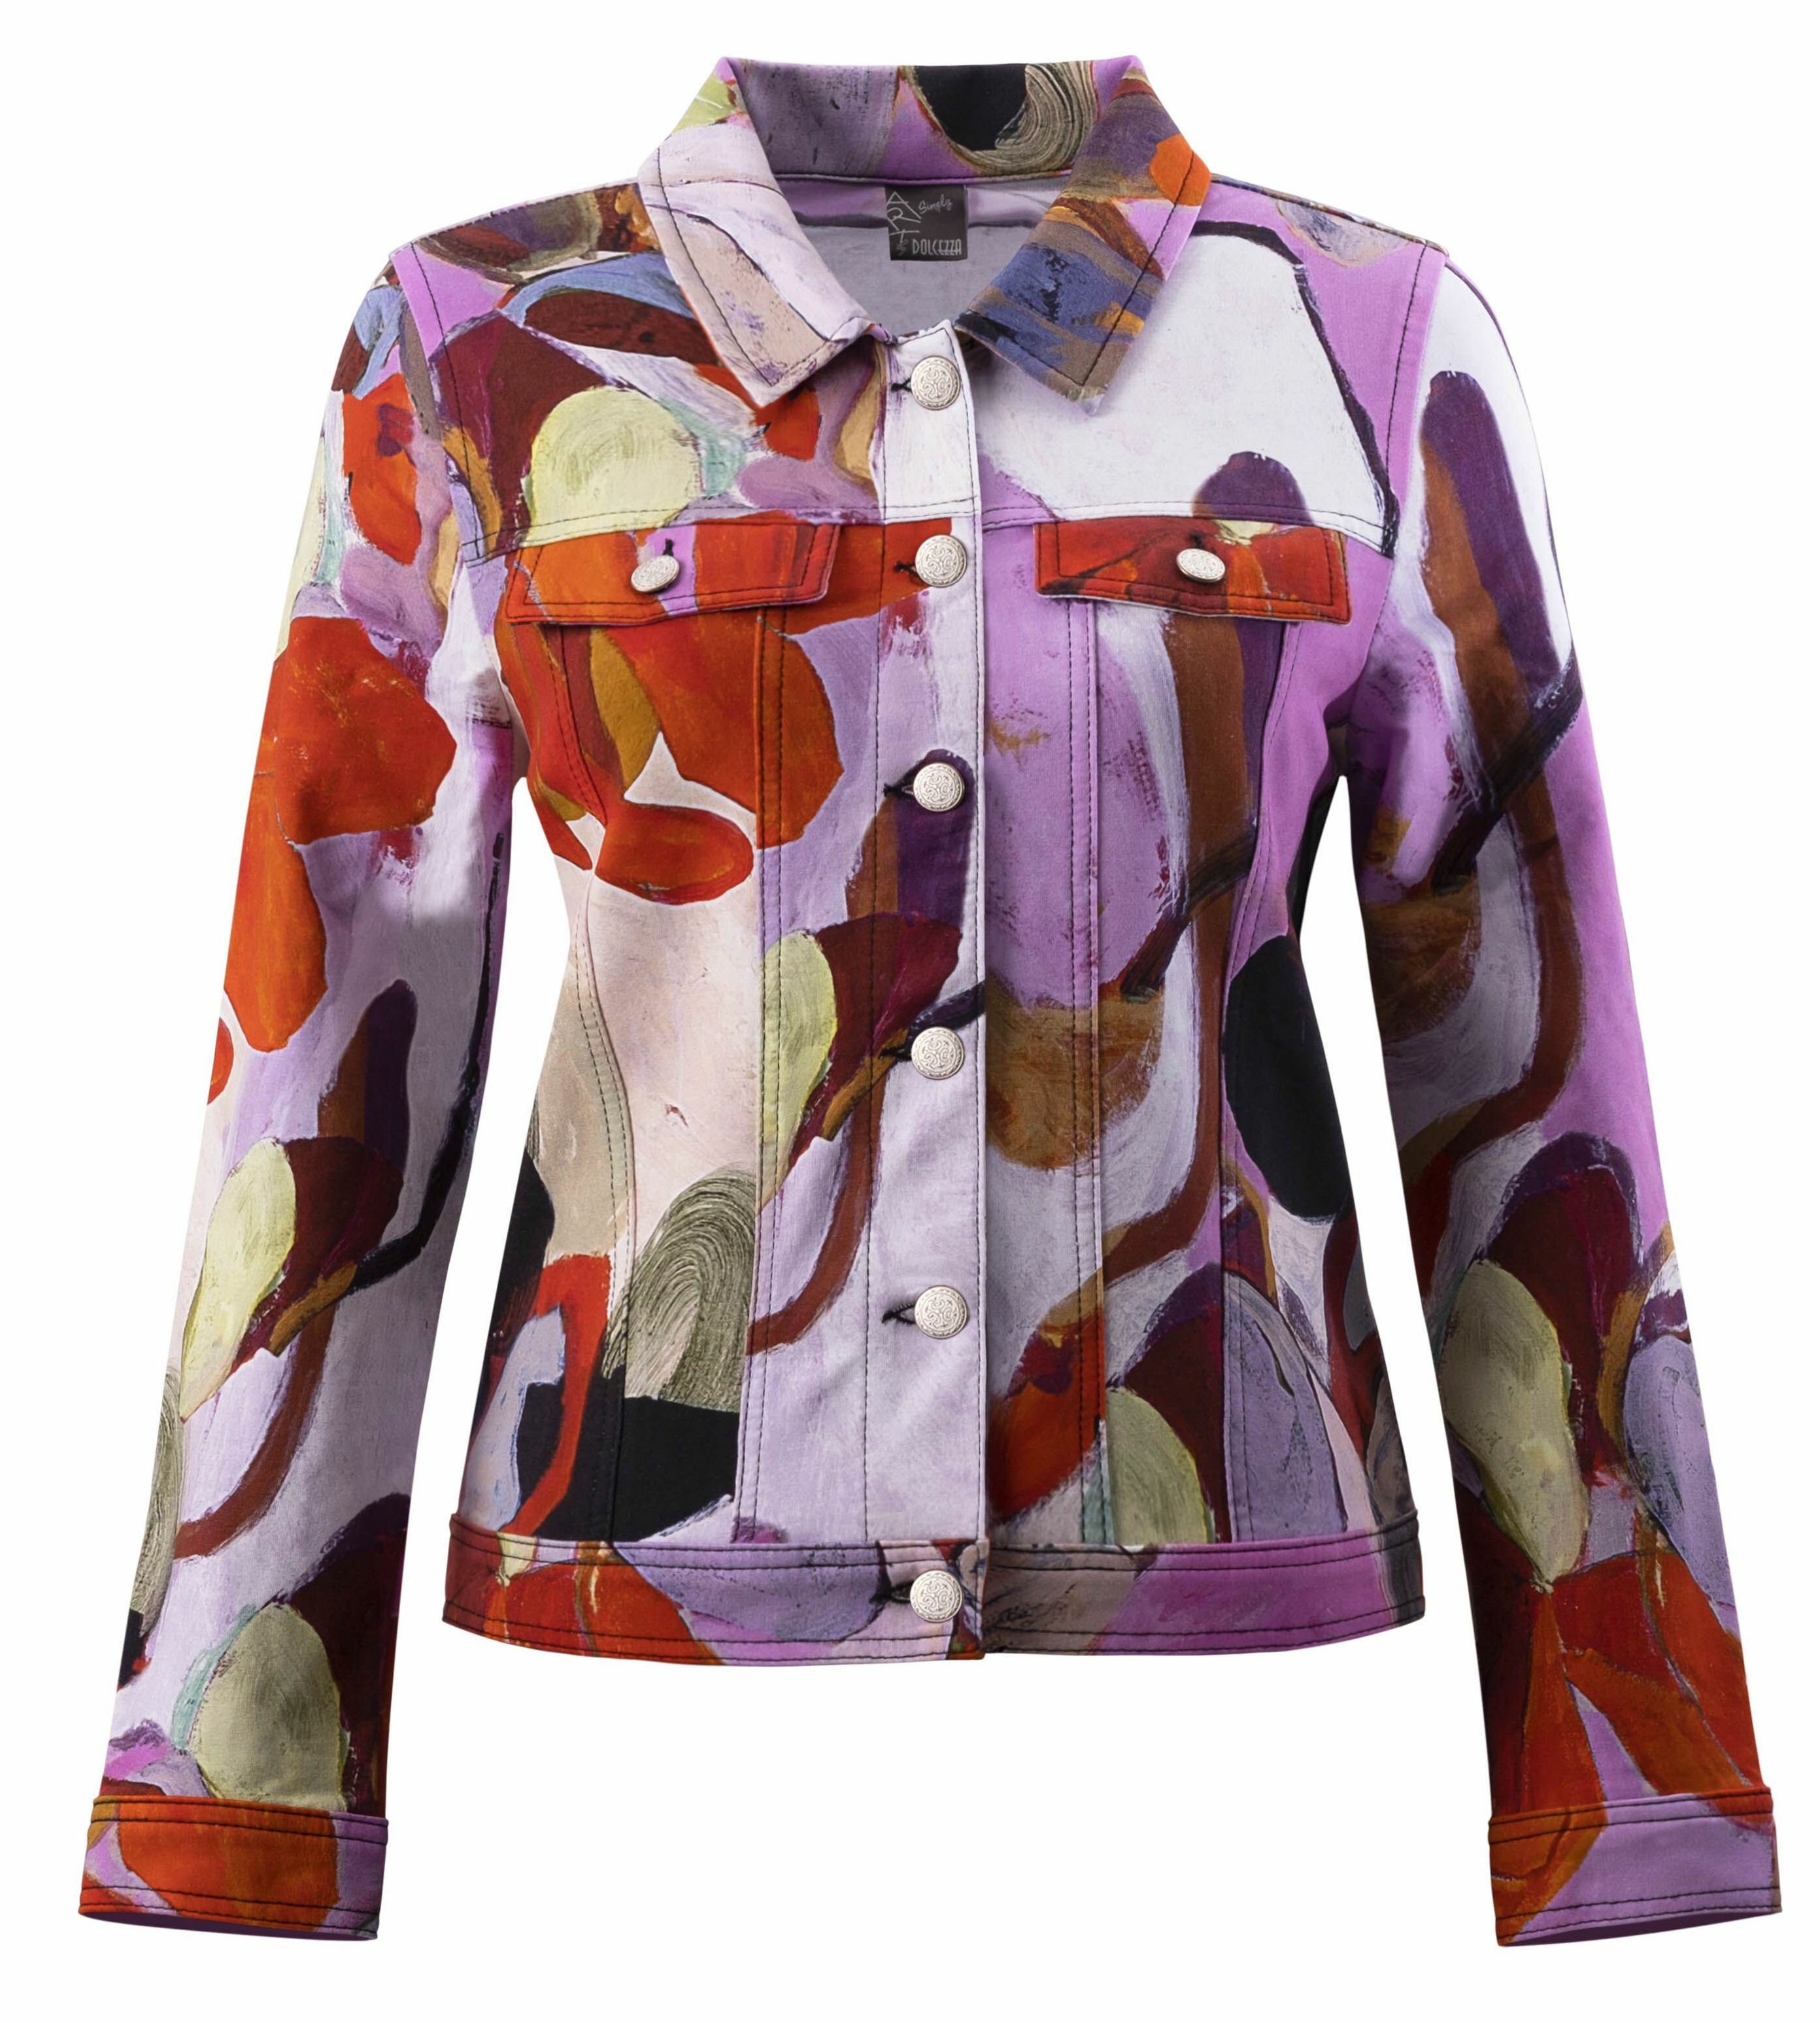 Simply Art Dolcezza: Blooms In Rouge Abstract Art Denim Jacket (1 Left!) DOLCEZZA_SIMPLYART_20726_N1